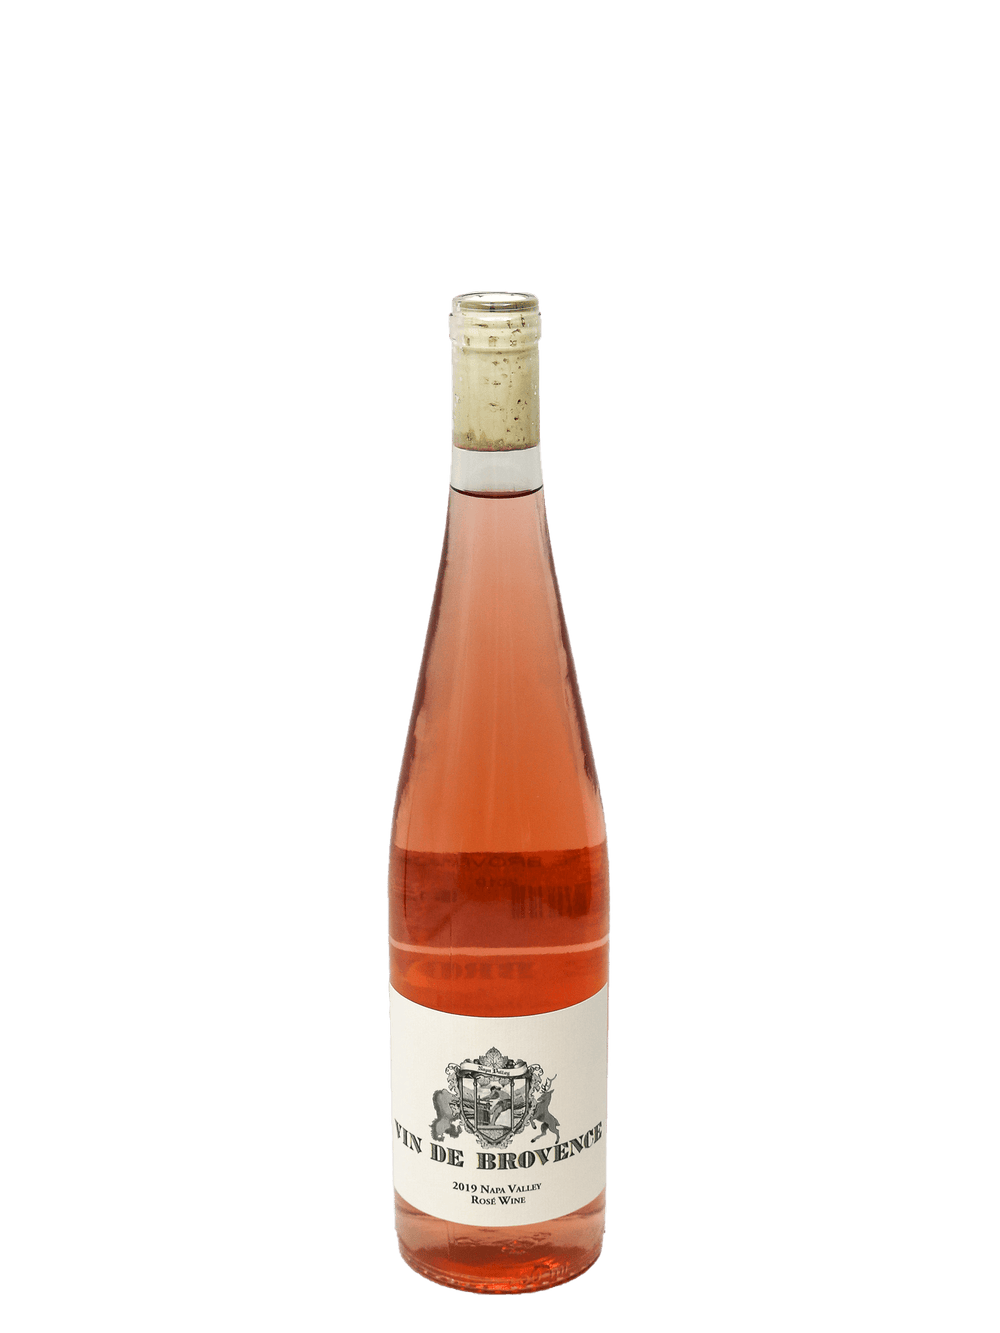 2019 Vin de Brovence Napa Valley Proprietary Pink Rose